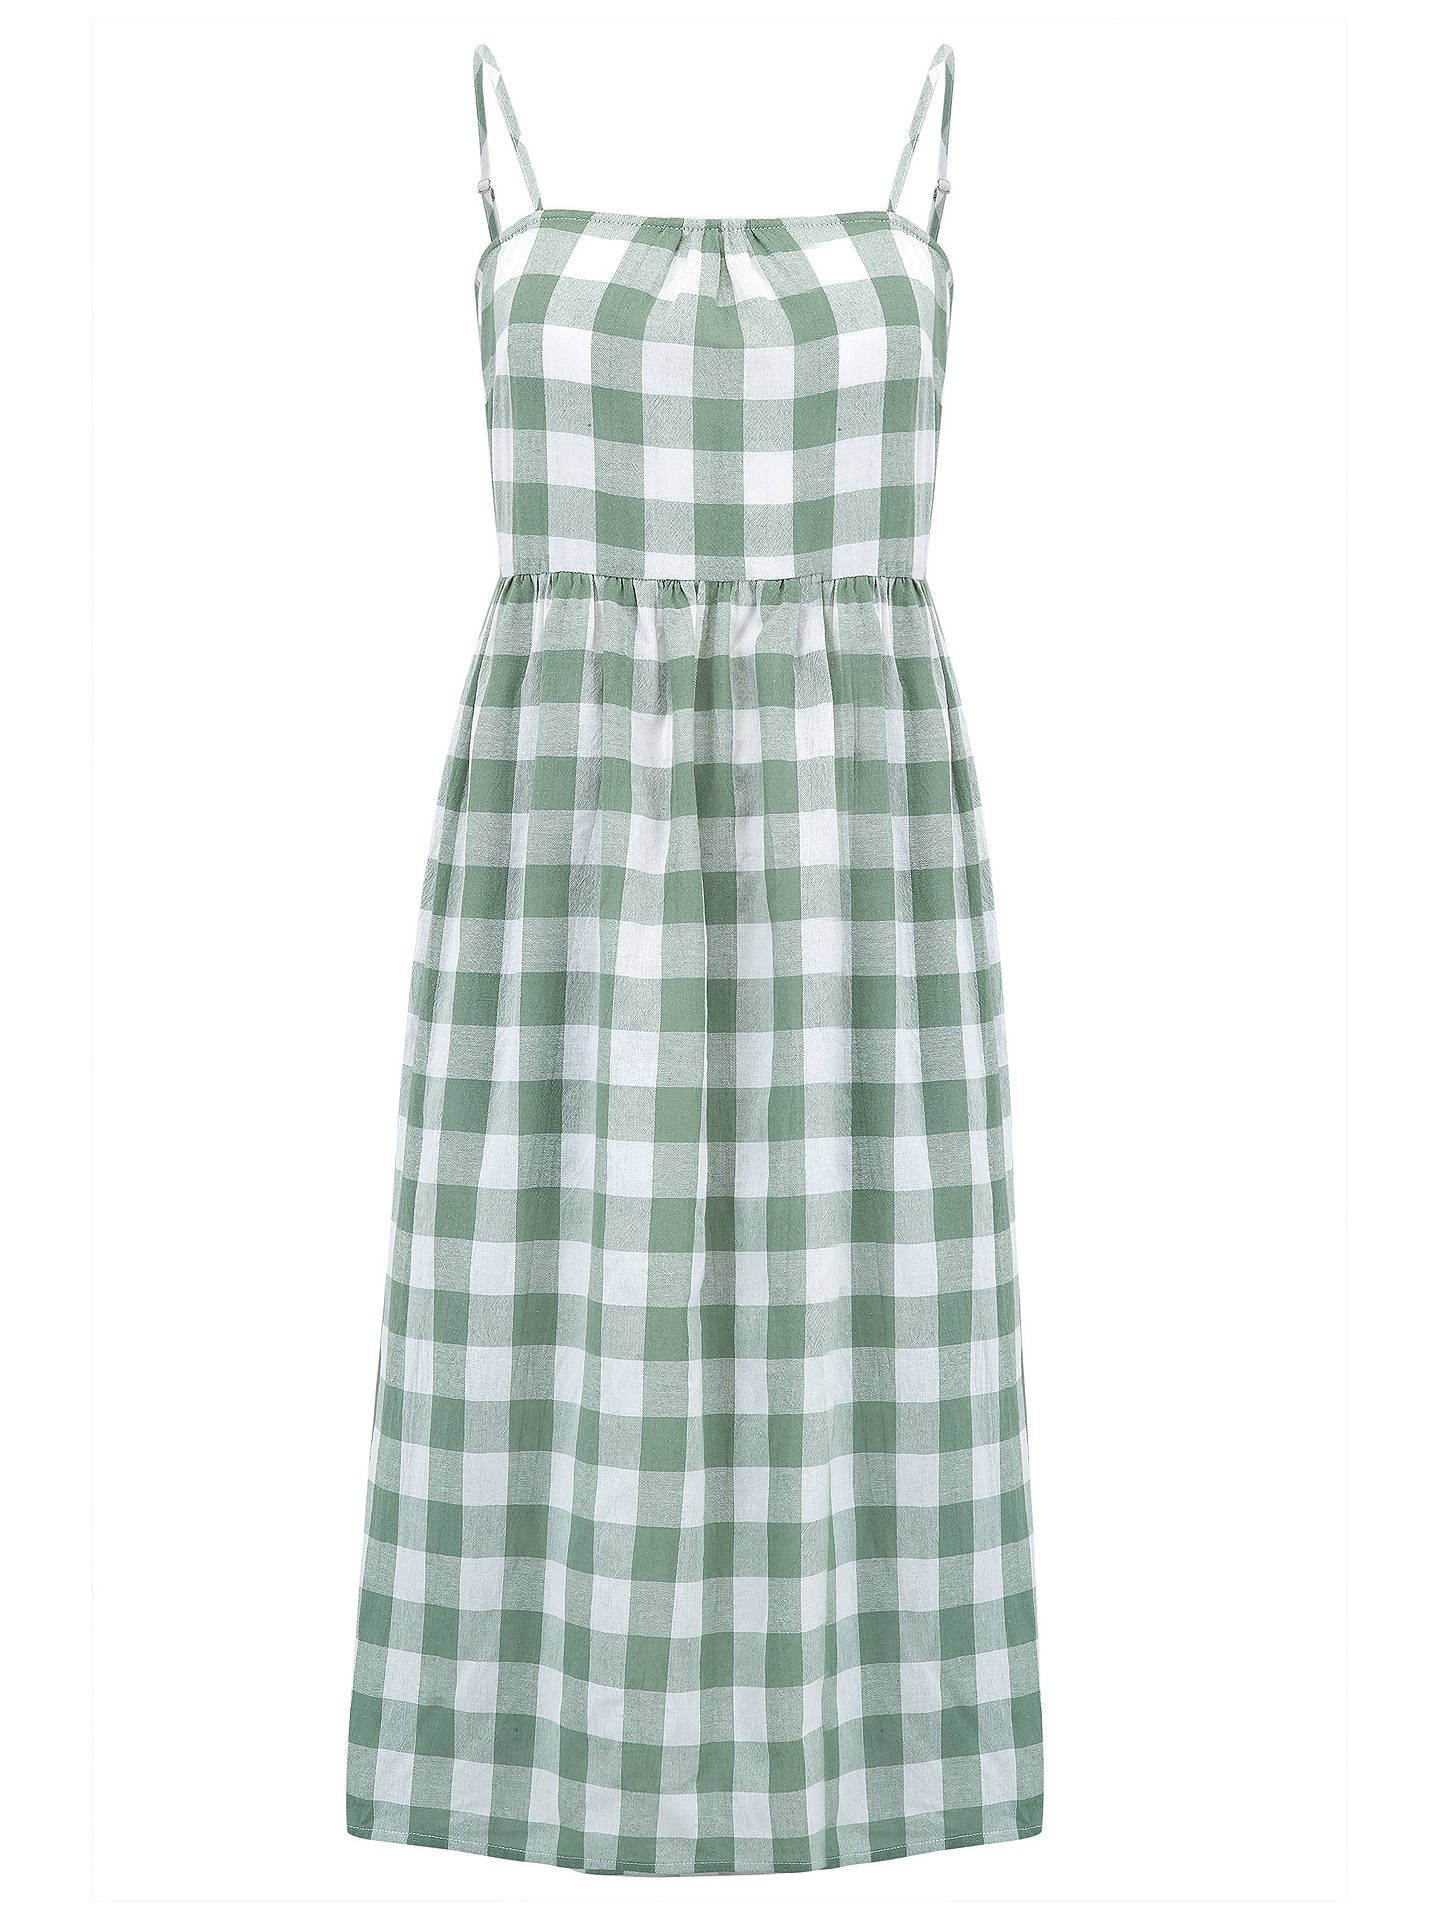 BuySugarhill Brighton Collette Check Sundress, White/Green, 8 Online at johnlewis.com